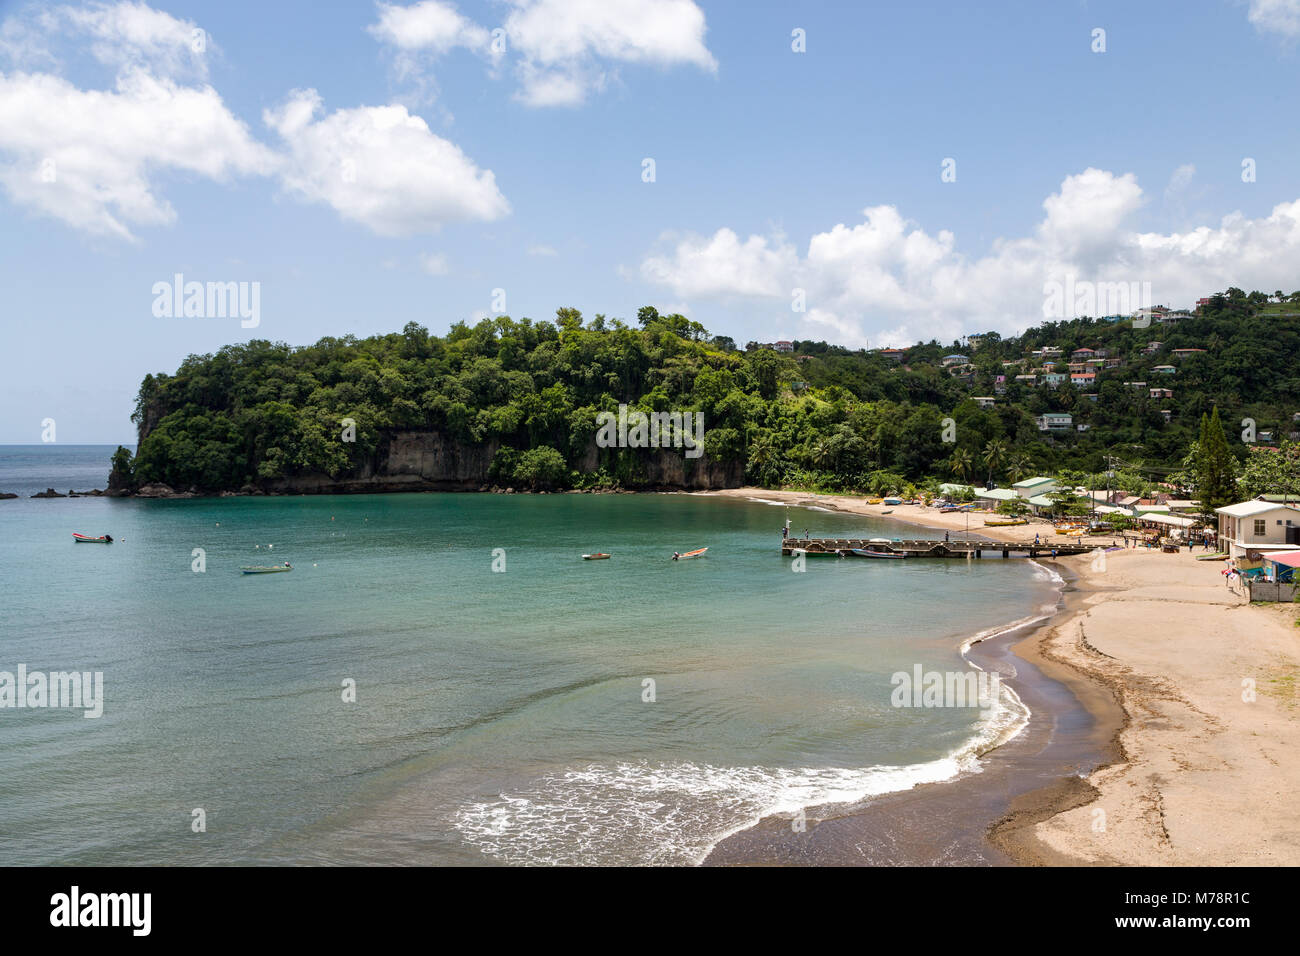 Der Strand von Anse La Raye, St. Lucia, Windward Islands, West Indies Karibik, Mittelamerika Stockbild